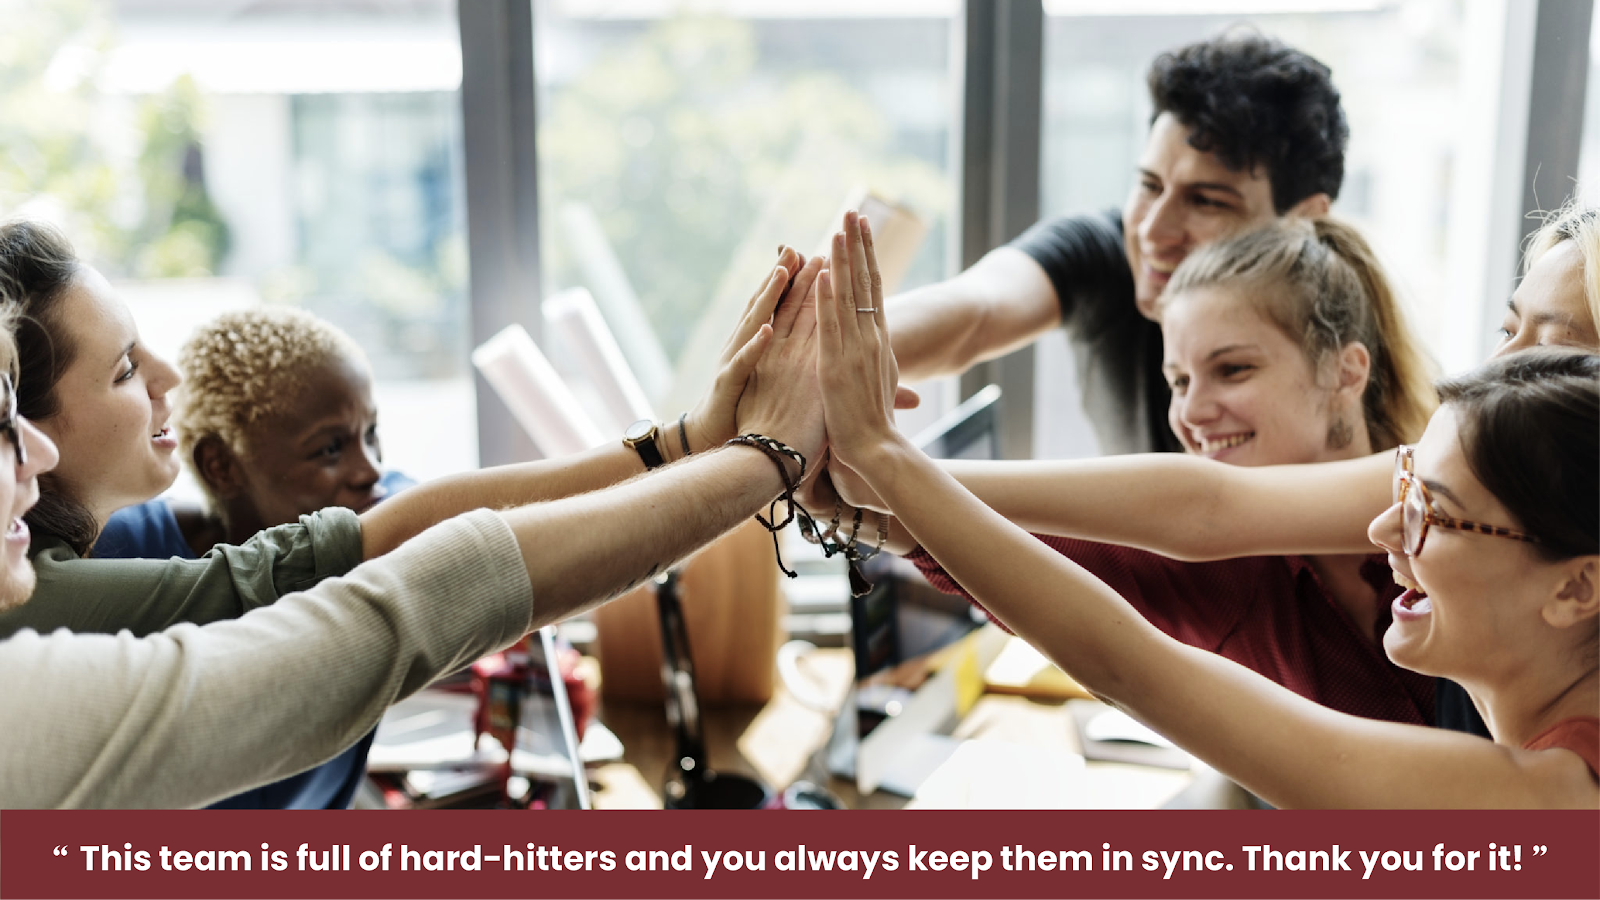 This team is full of hard-hitters and you always keep them in sync. Thank you for it!